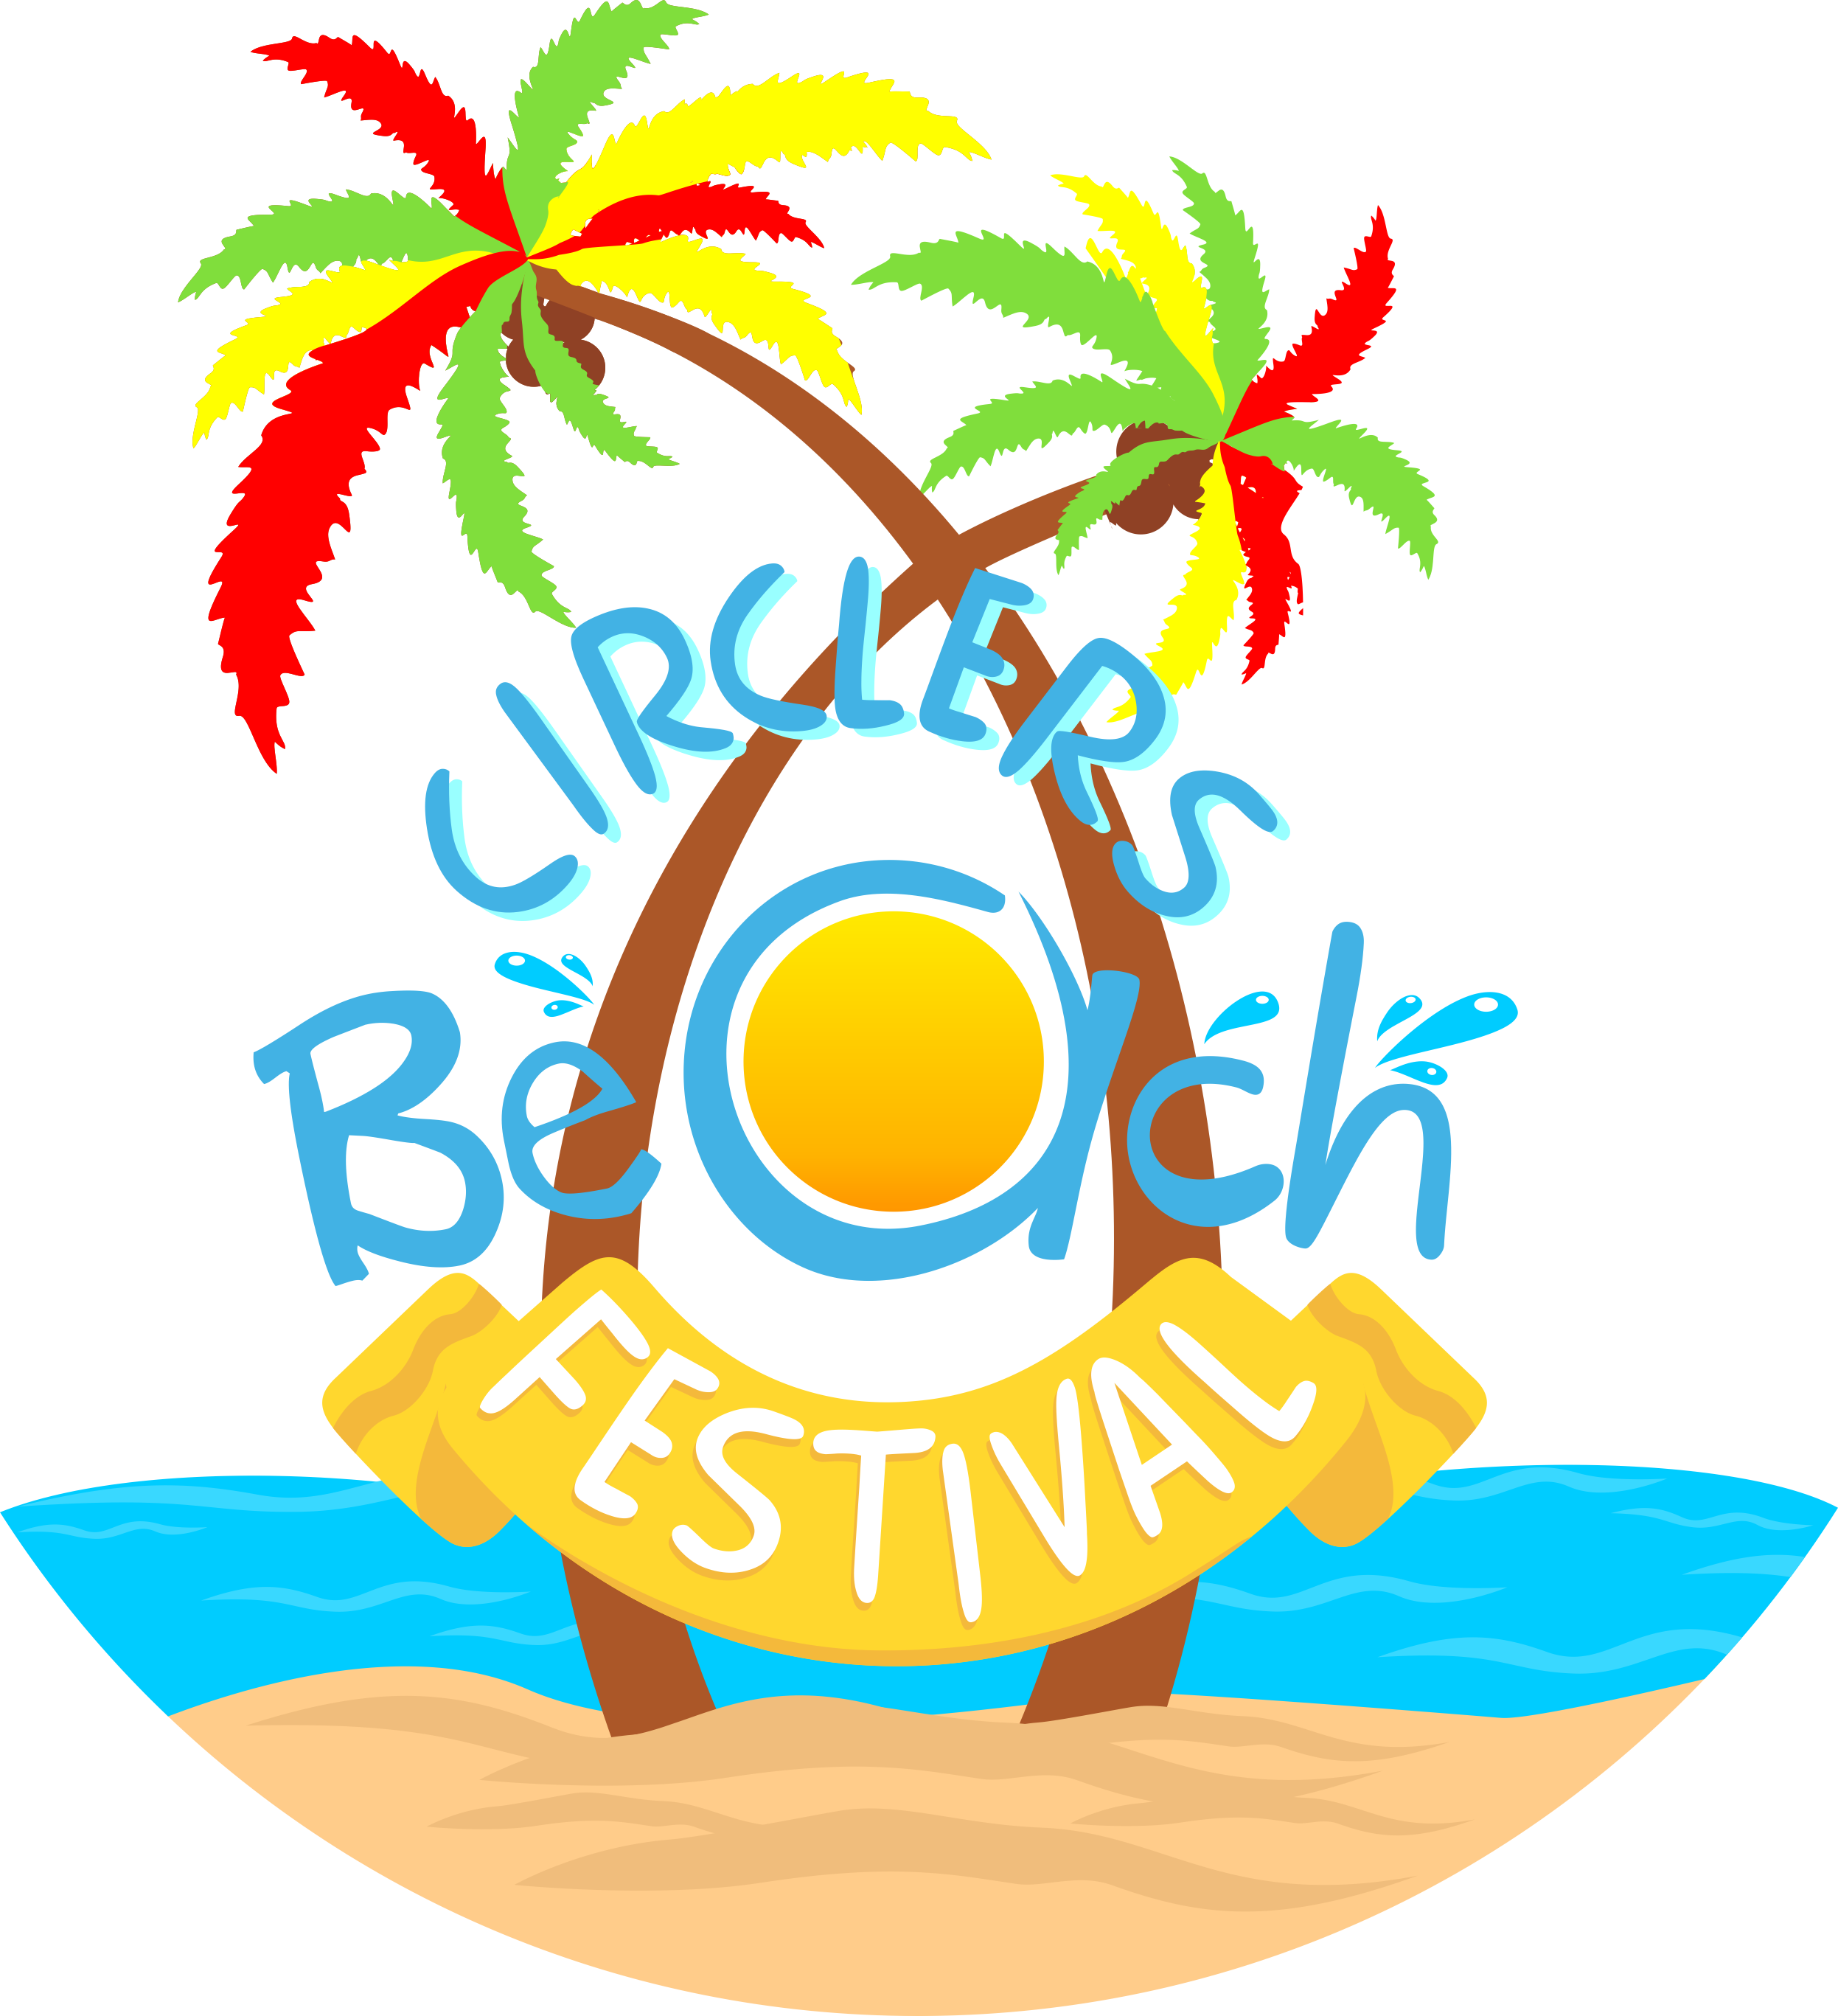 Welcome to Fun Circlers Beach Festivals.